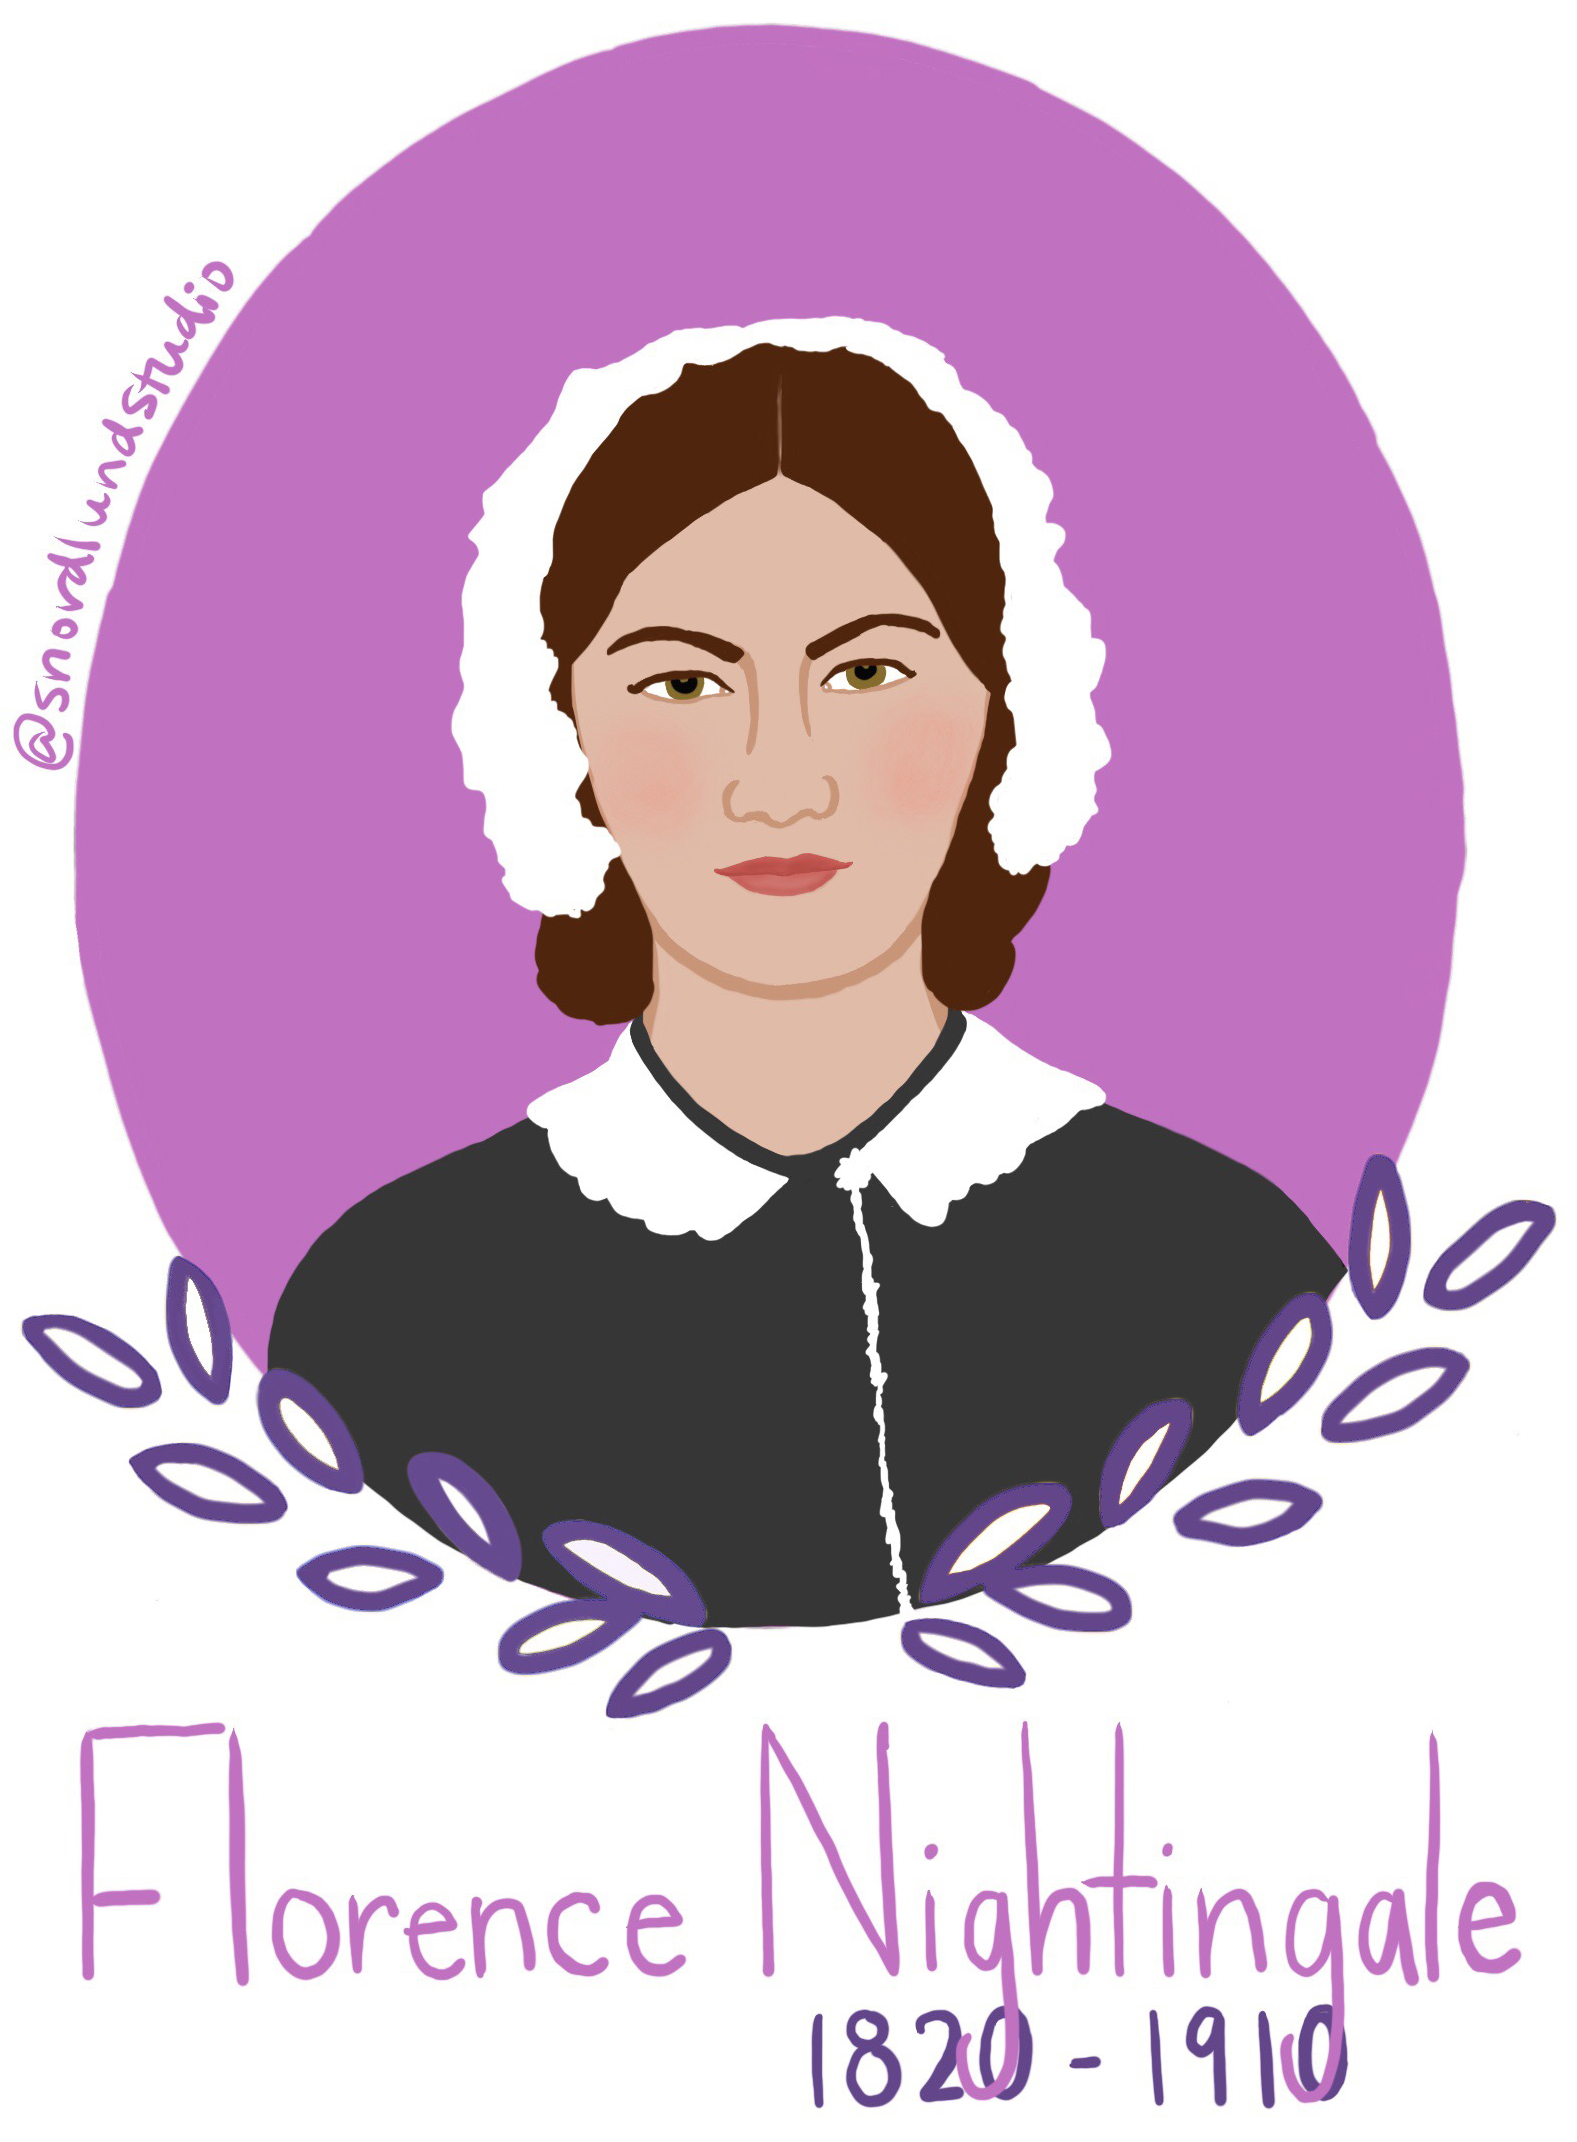 11. Florence Nightingale - Florence Nightingale (1820-1910) was a statistician, social reformer, and founder of modern nursing.